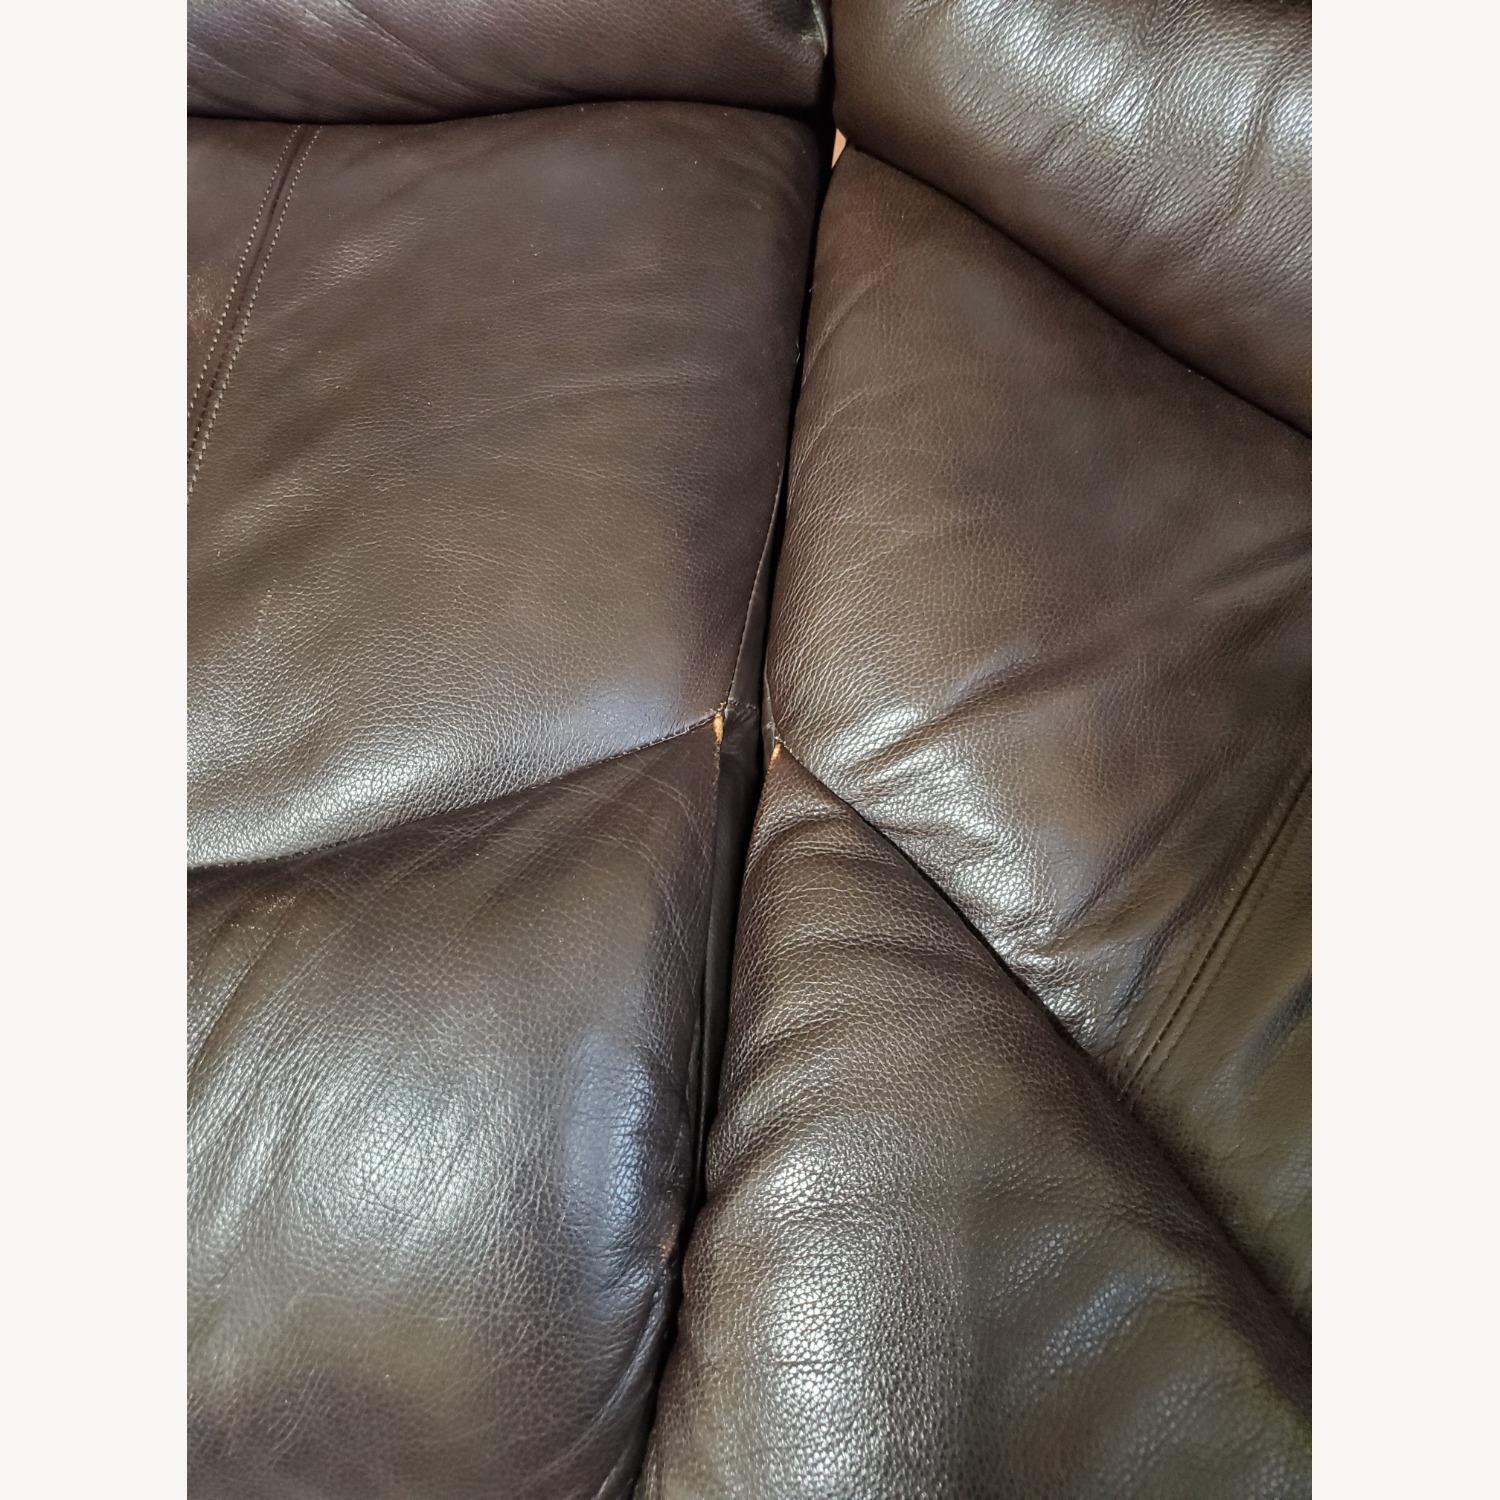 Power Reclining Leather Couch with Chaise - image-4